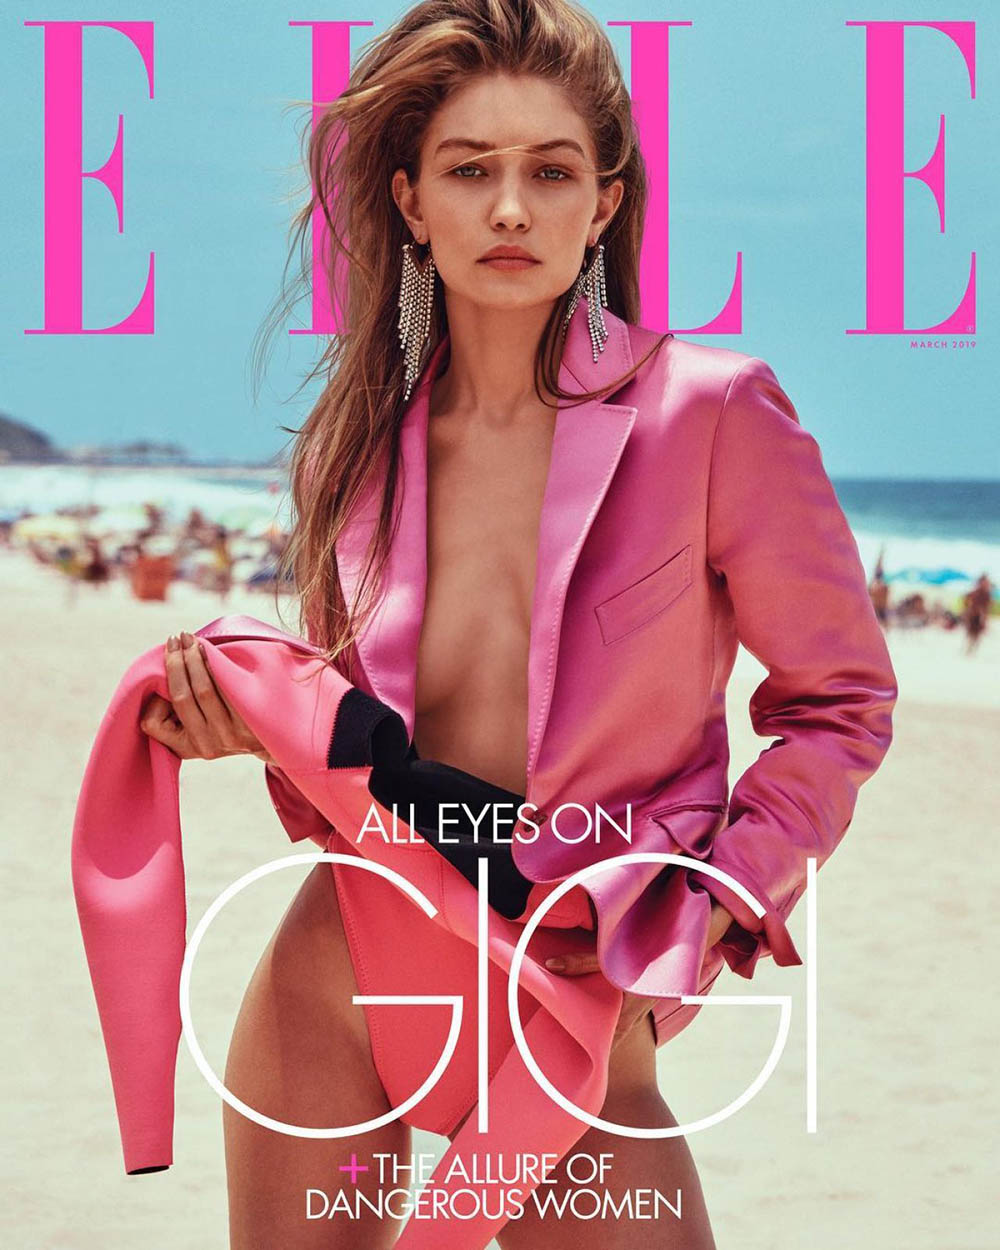 Gigi Hadid covers Elle US March 2019 by Chris Colls